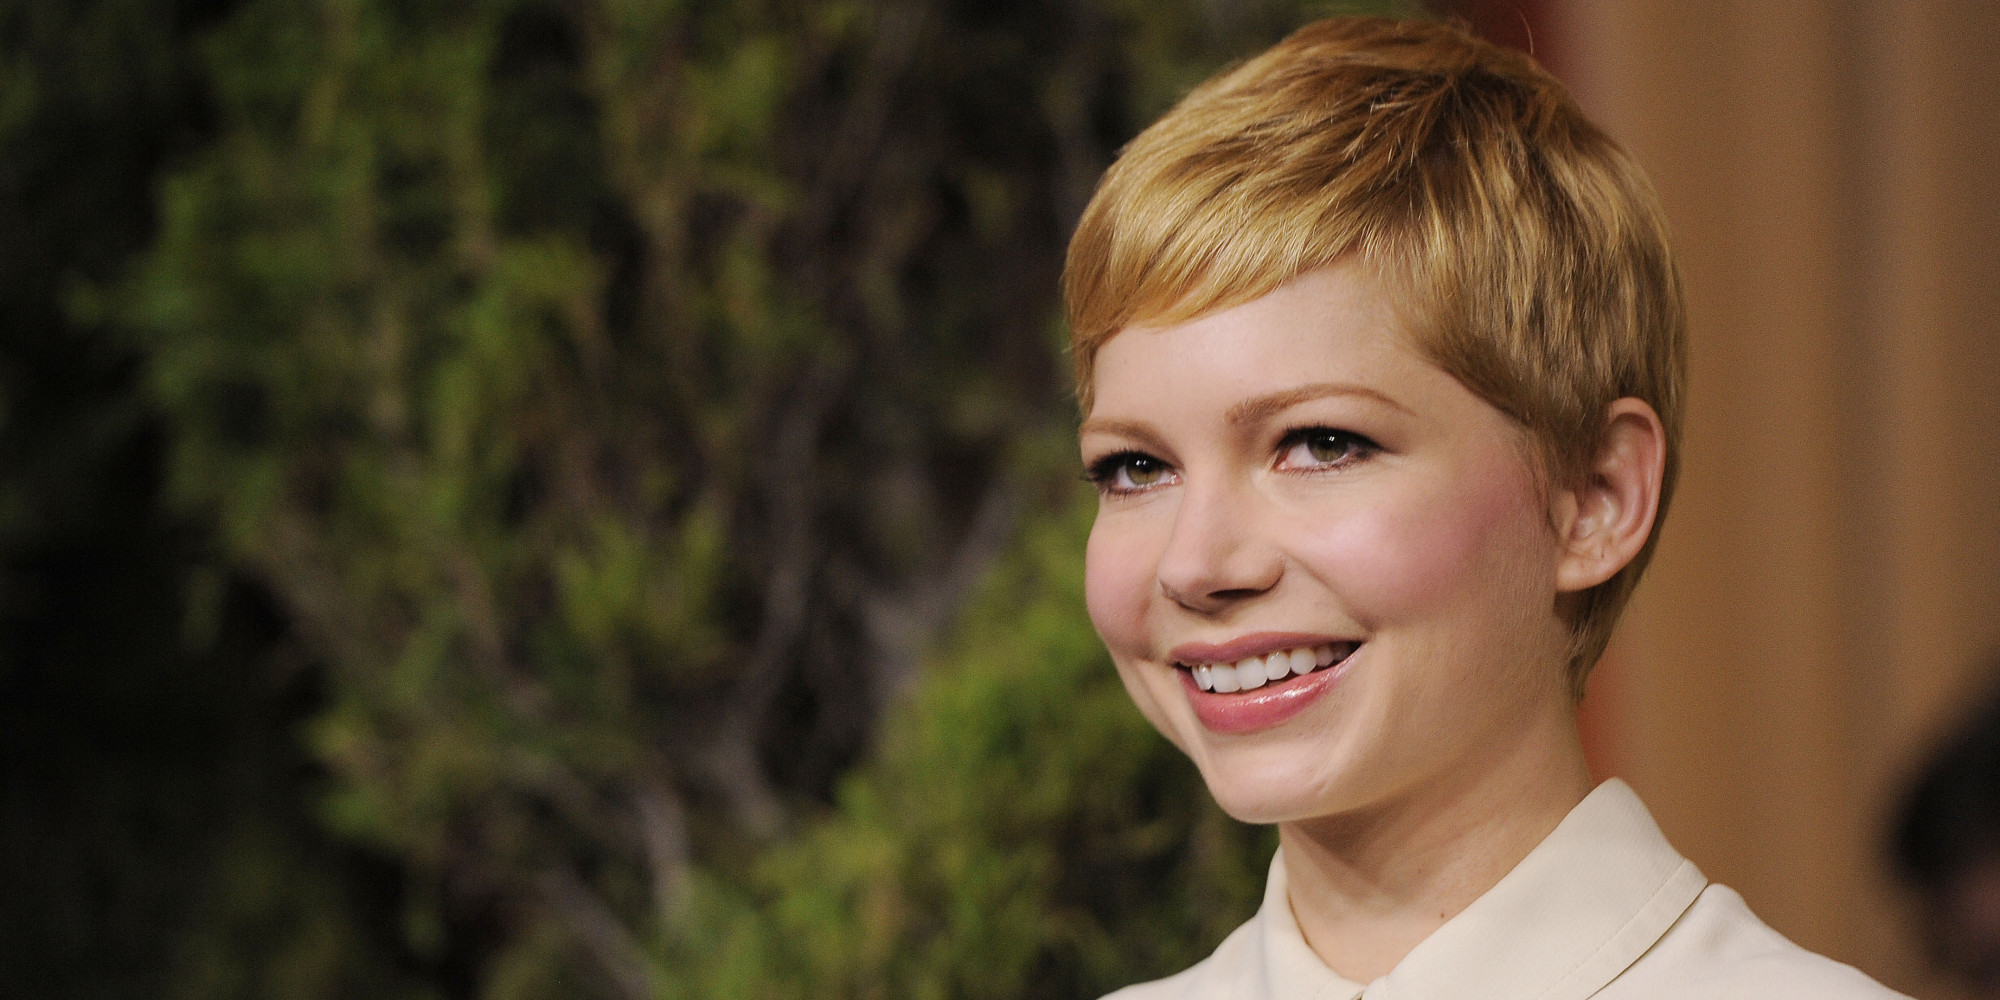 Michelle Williams' Short Hair Is A Thing Of The Past | The Huffington ...